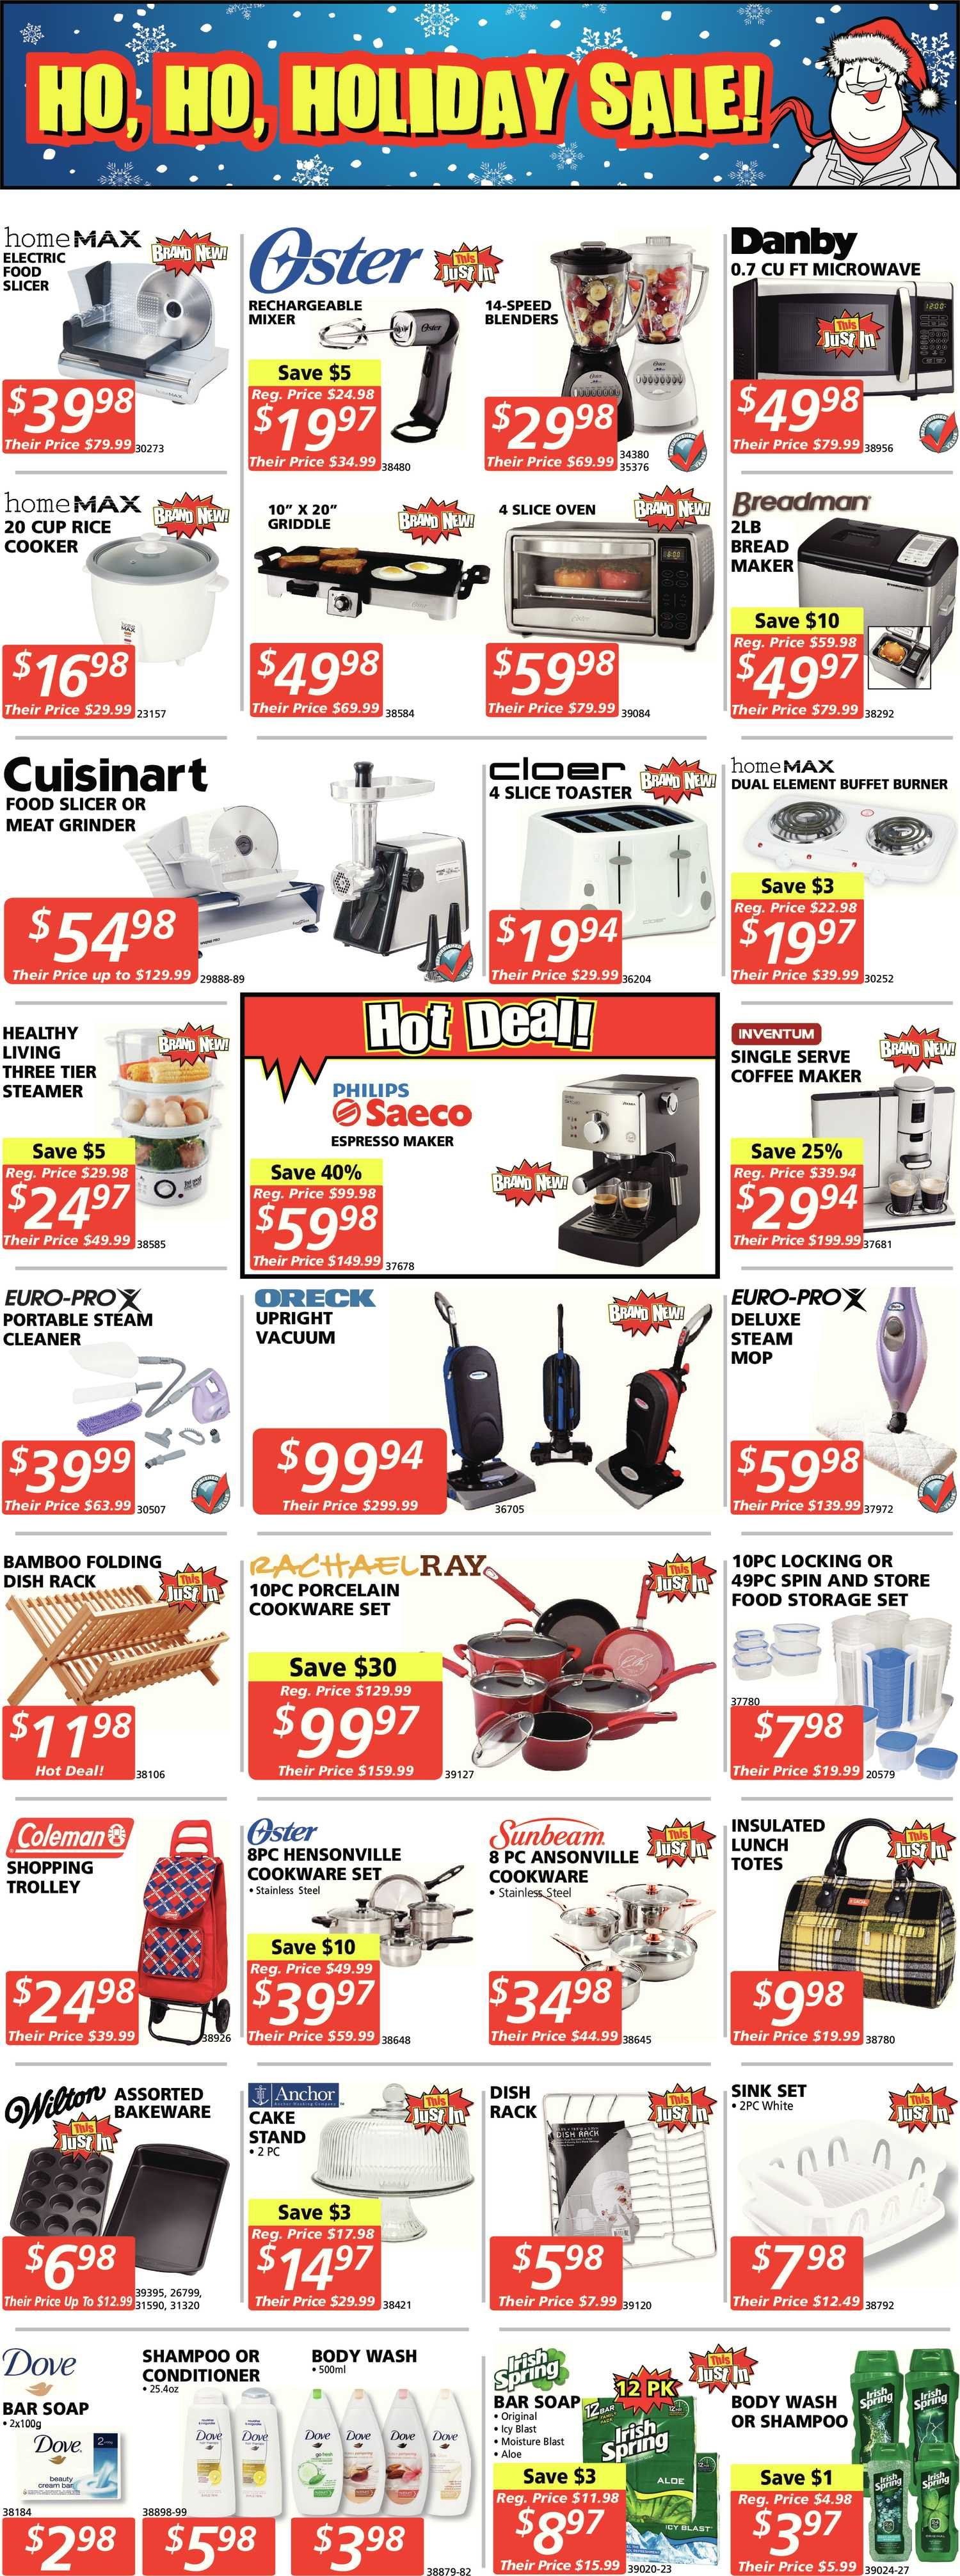 XS Cargo Weekly Flyer - Just Real Deals - A Christmas Ho, Ho